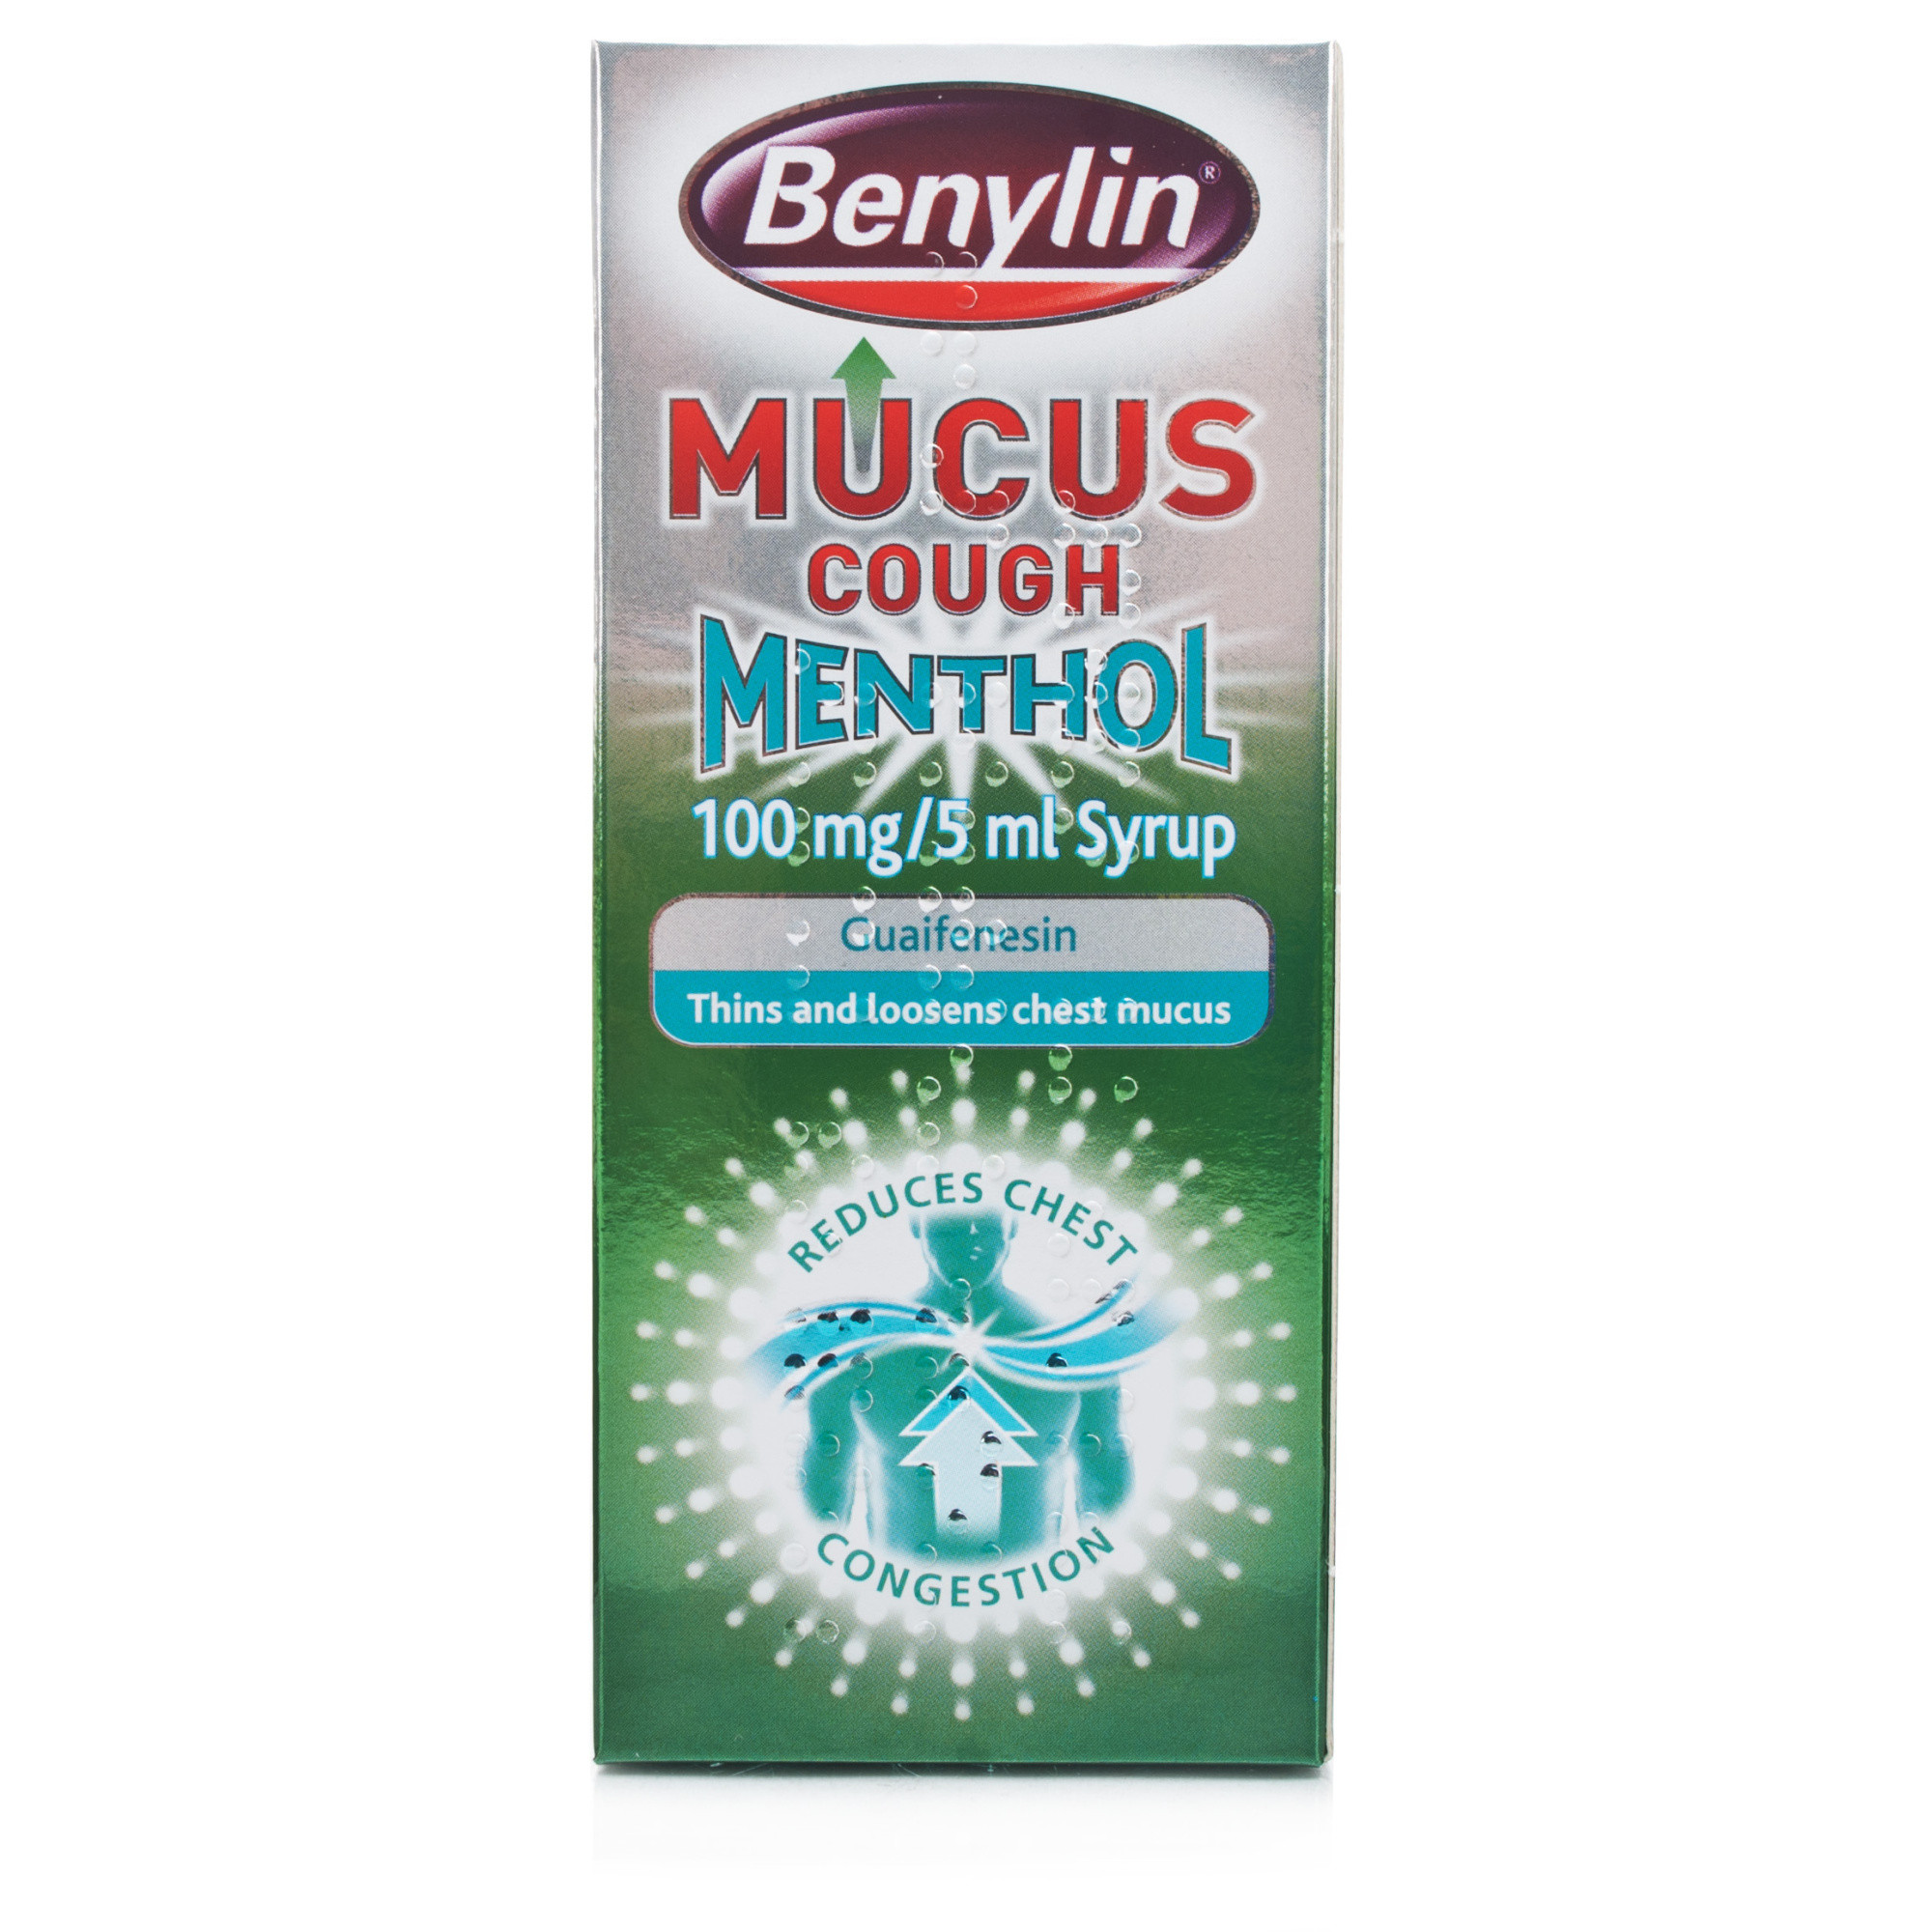 Benylin Mucus Cough Menthol 100mg/5ml Syrup 150ml